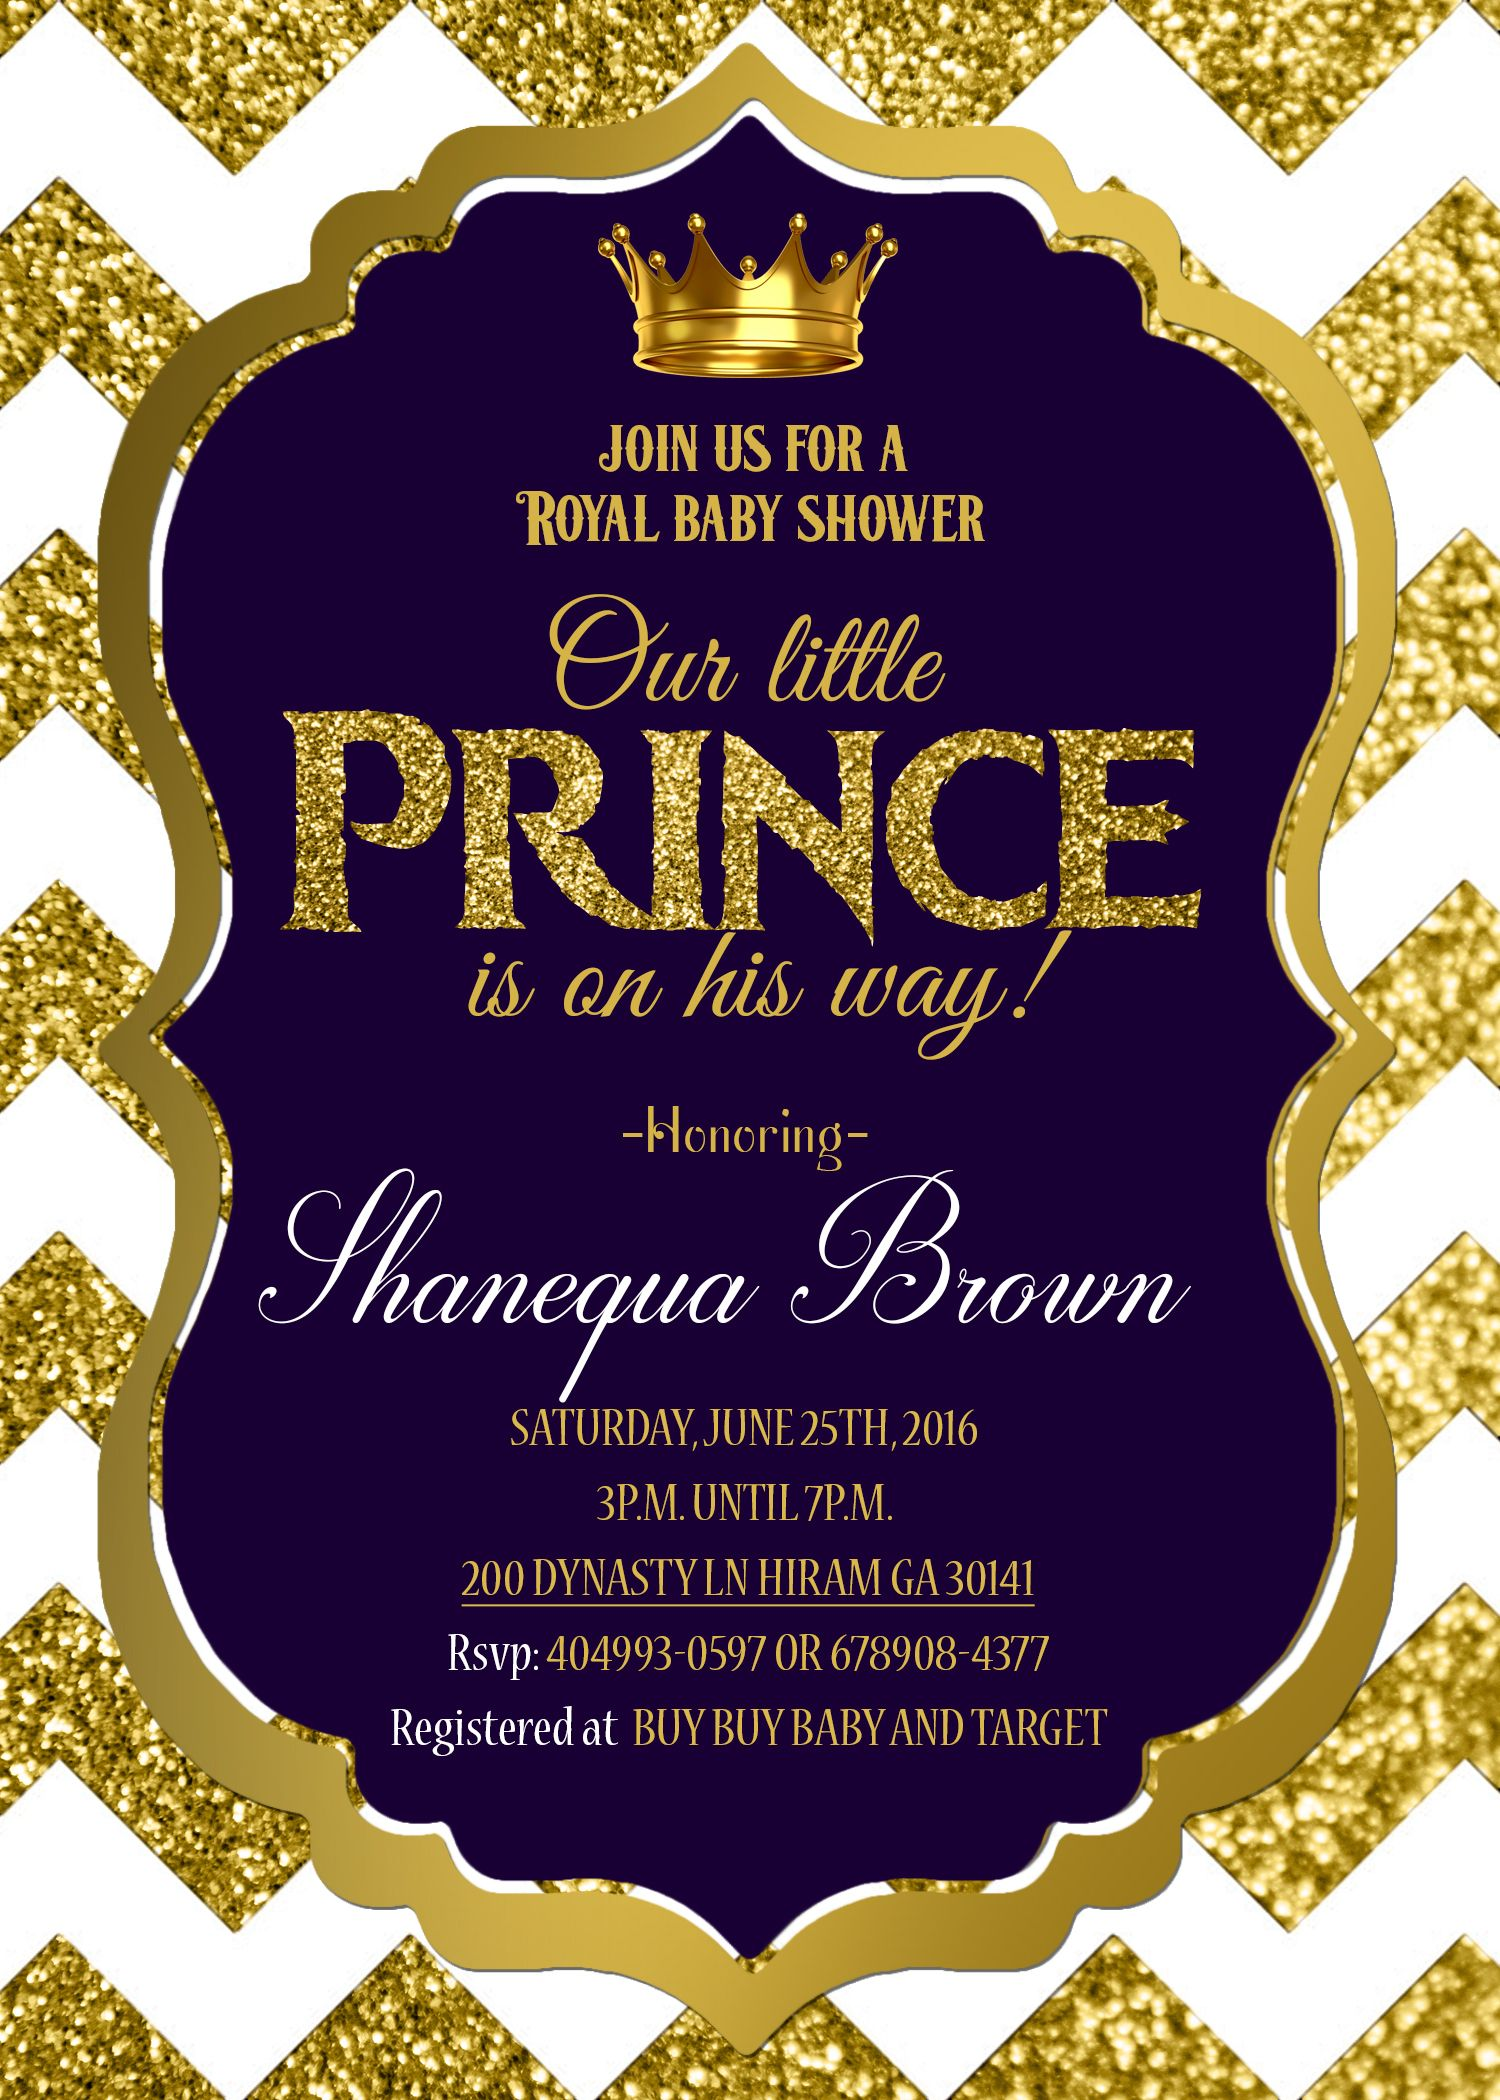 Royal prince baby shower invitation, printable royal baby shower ...